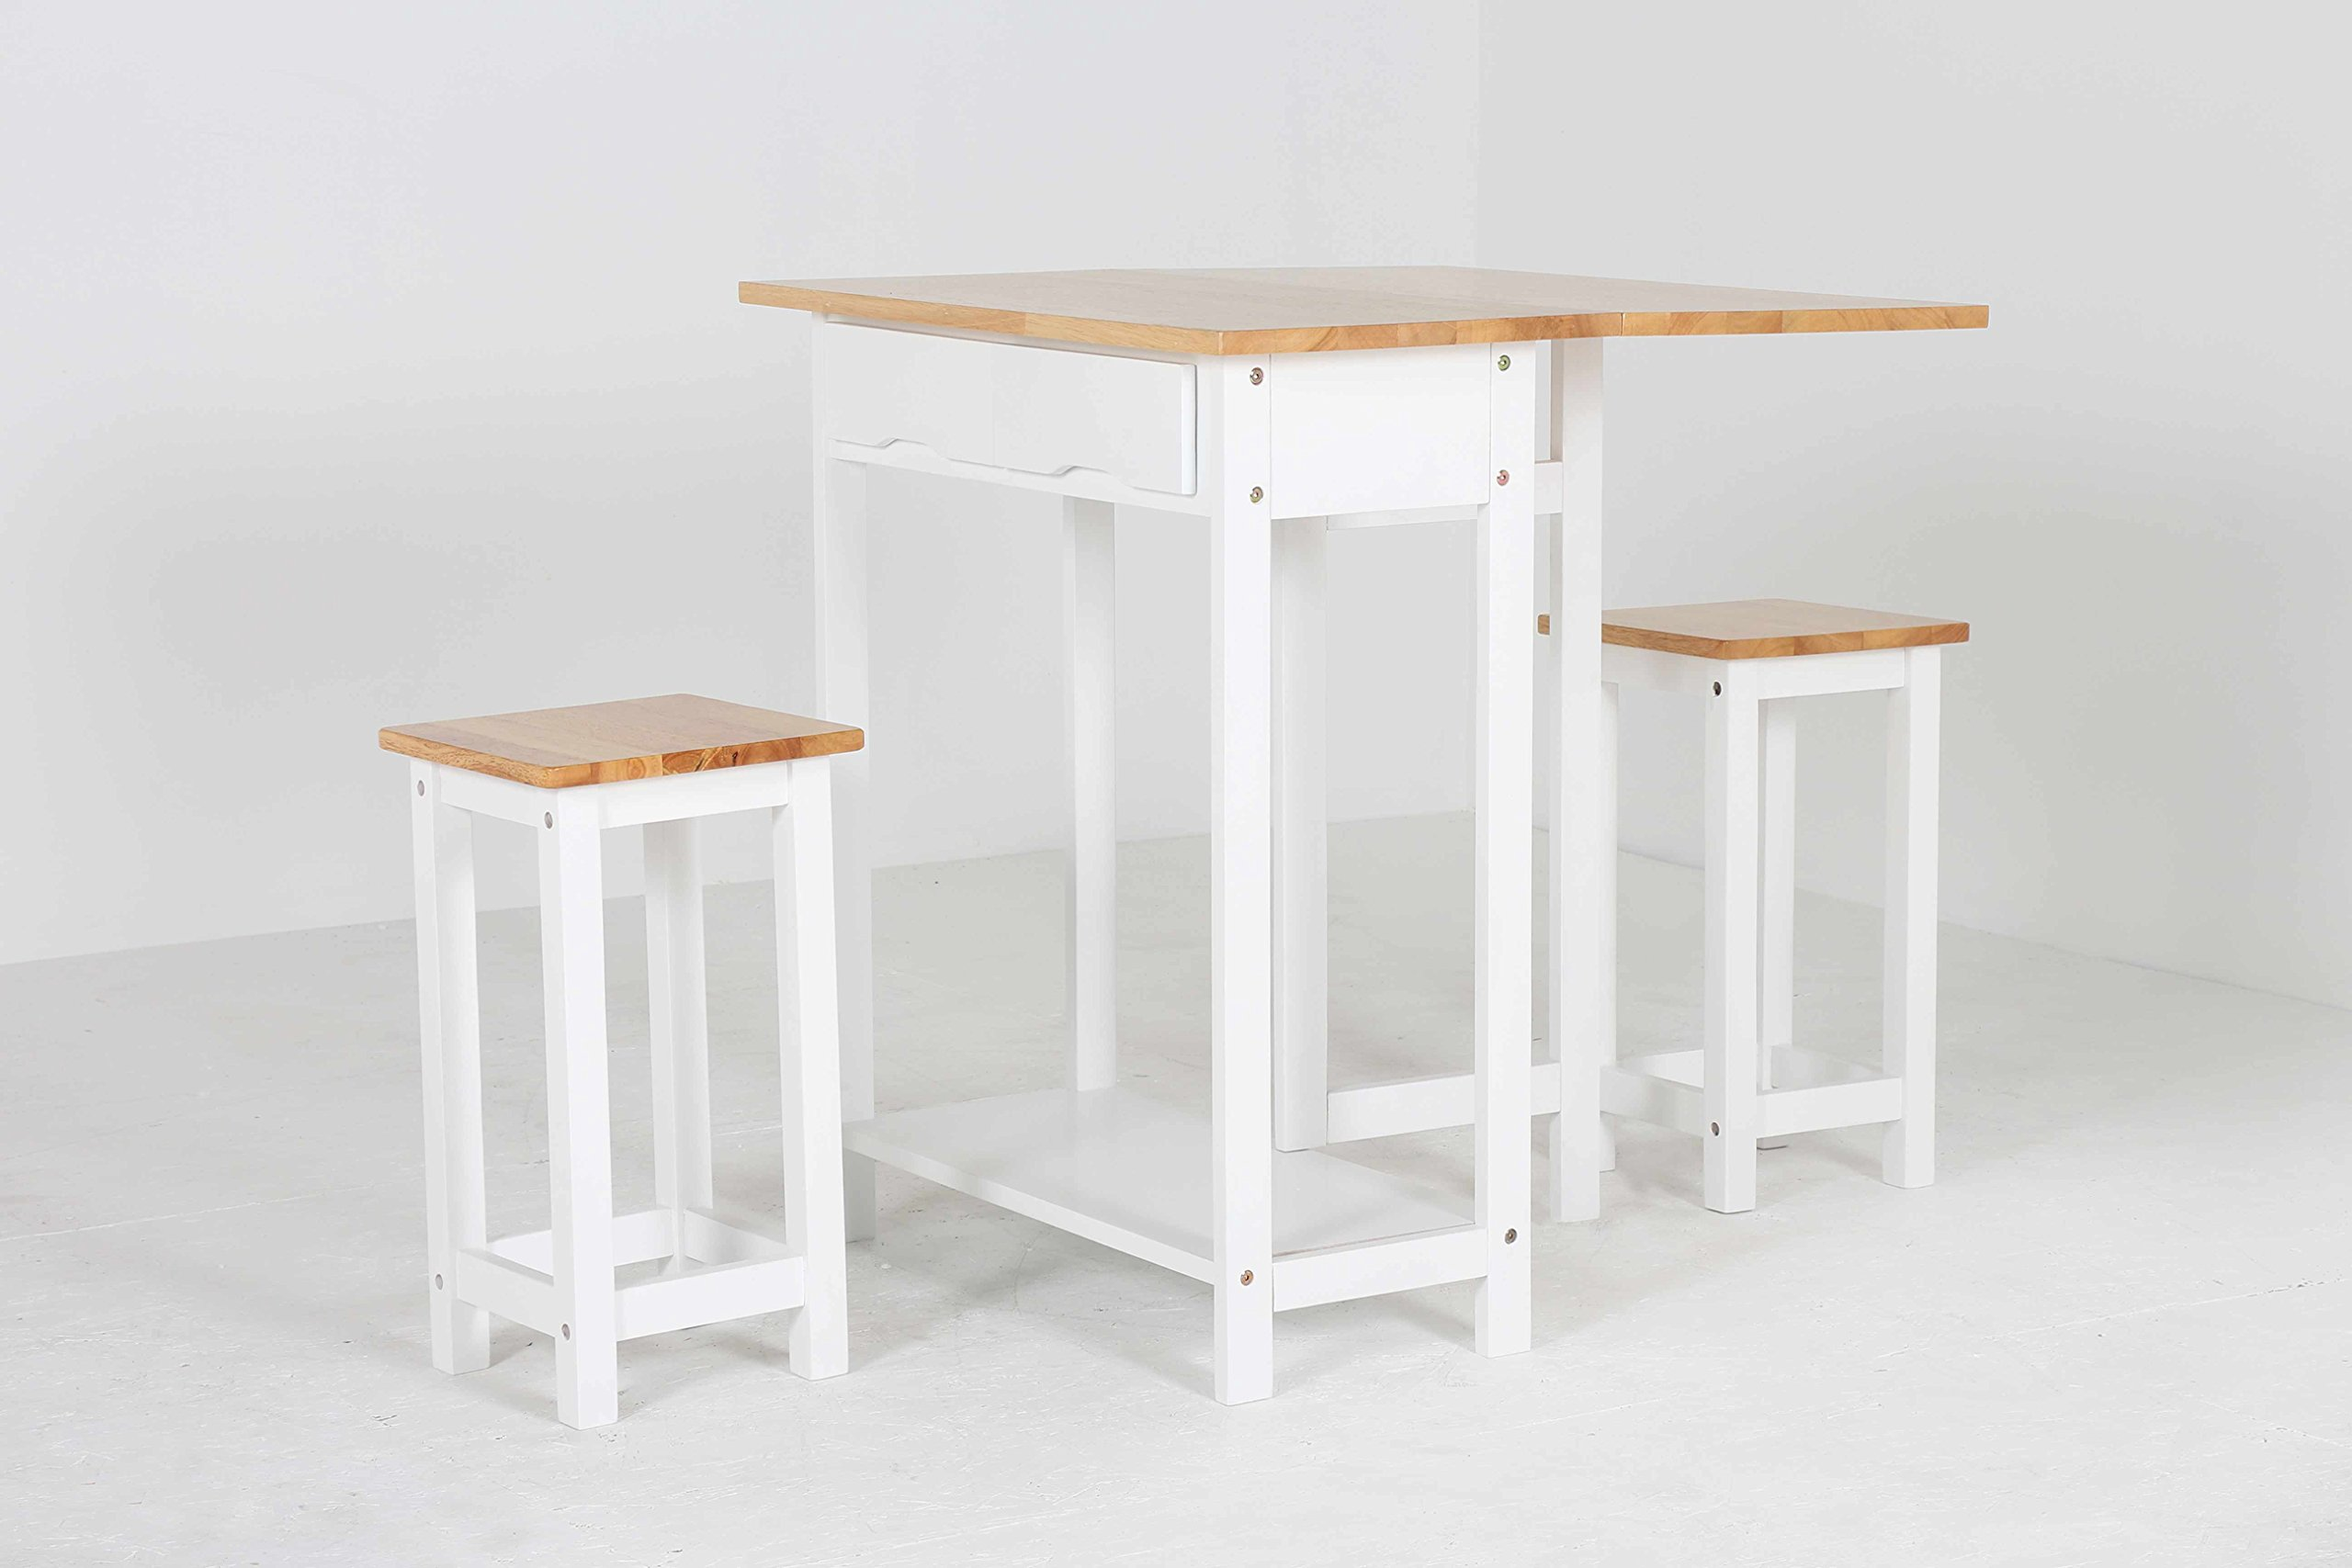 Oliver Smith - 2 Person 30'' x 30'' - Solid Wood - Space Saving Drop Leaf Table Set - 3 Piece Set - 1 Table - 2 Stools - White and Natural - 707A